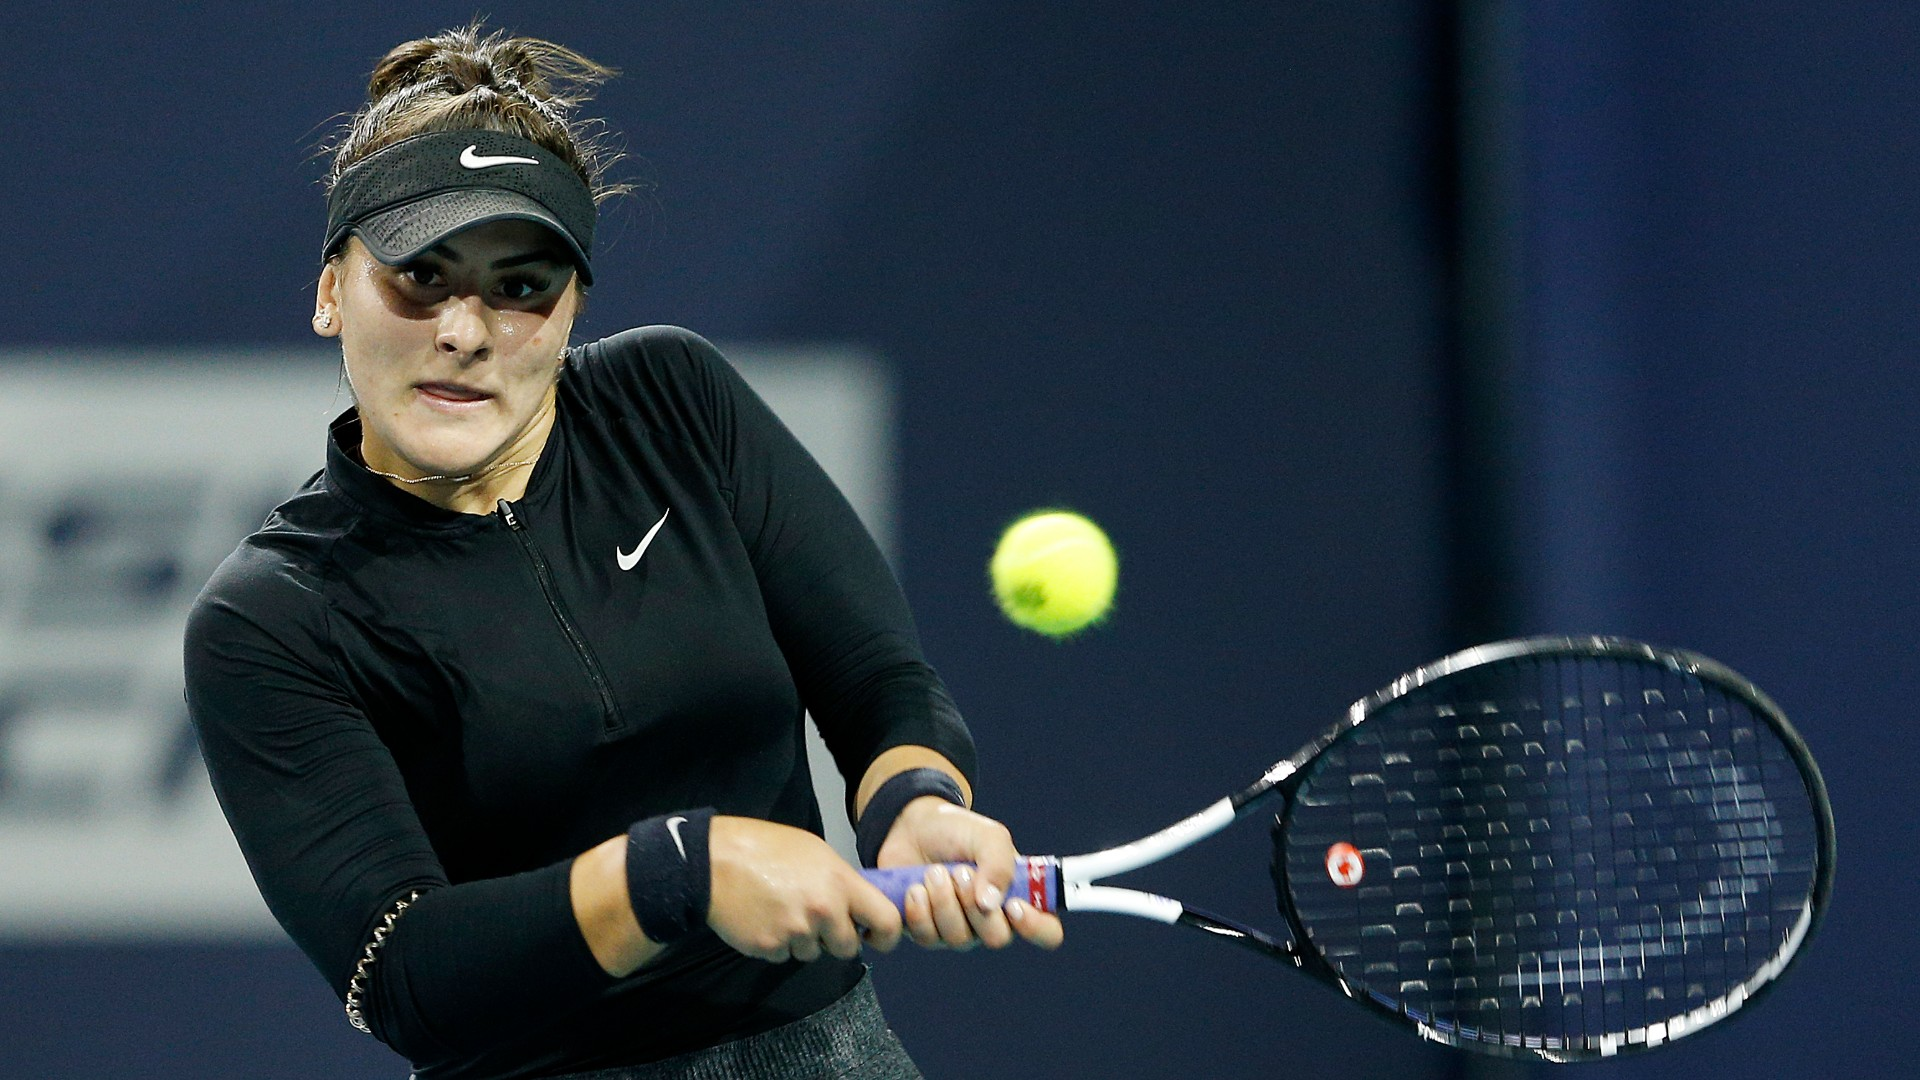 Rogers Cup 2019: Canadian Bianca Andreescu planning return in Toronto